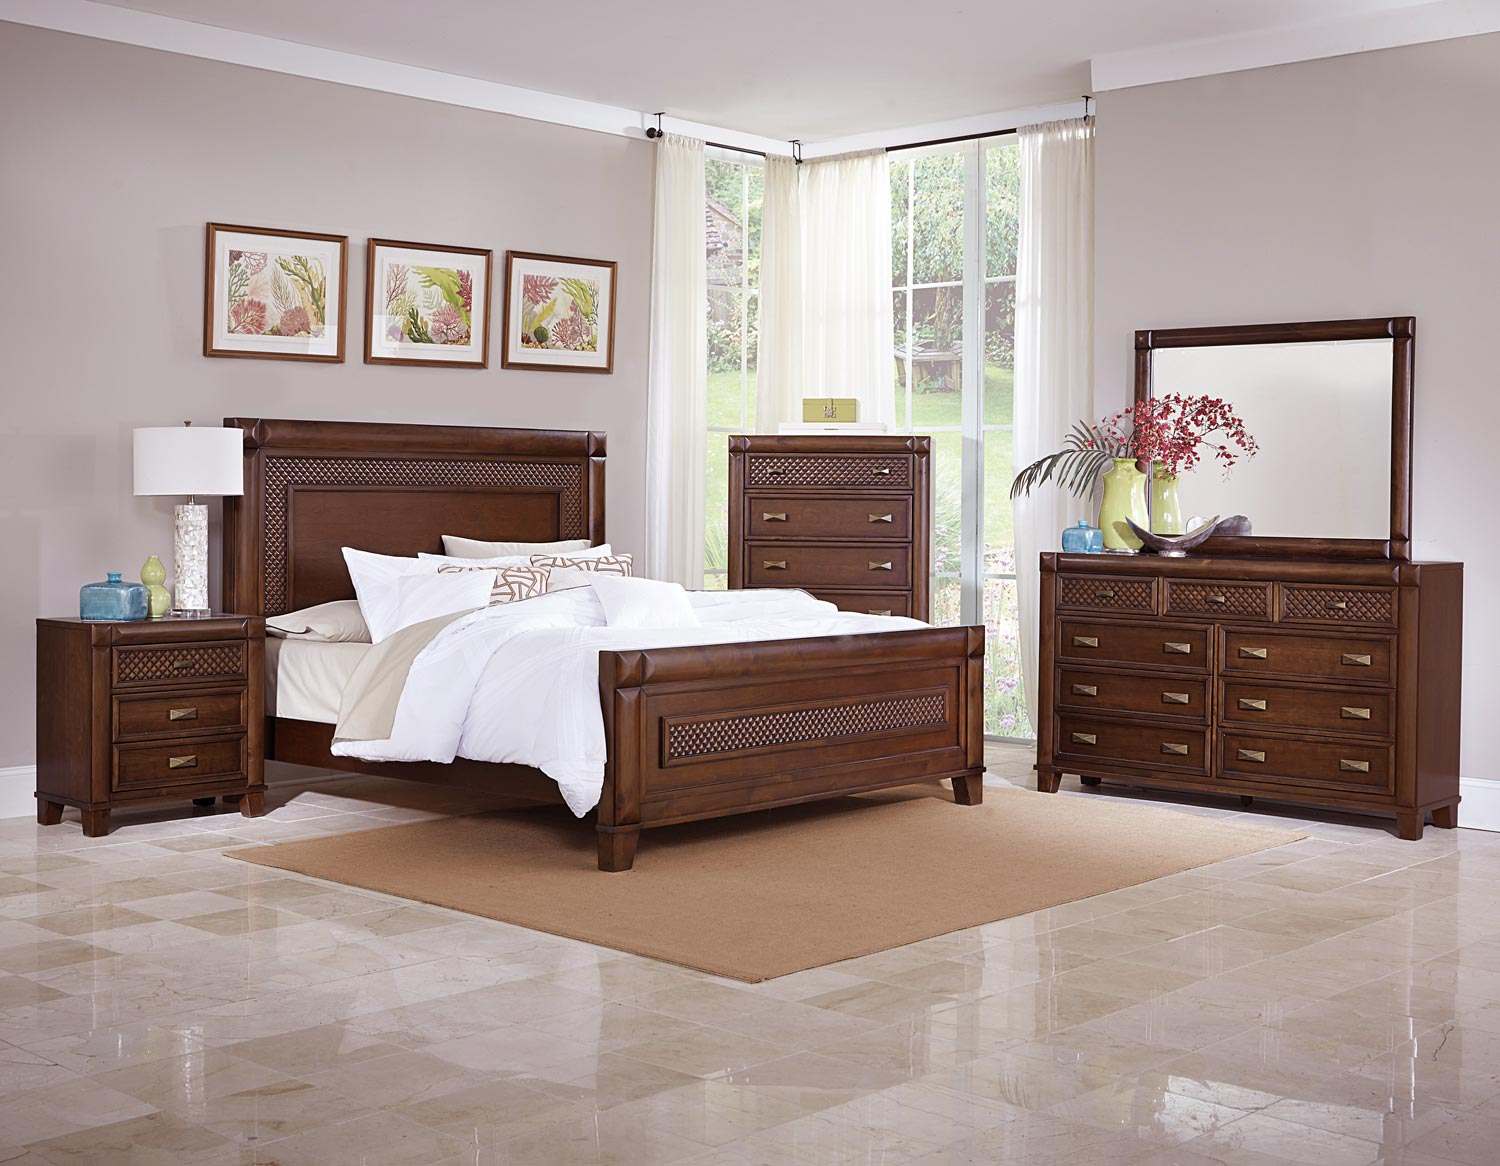 Homelegance Nealon Panel Bedroom Set - Warm Cherry